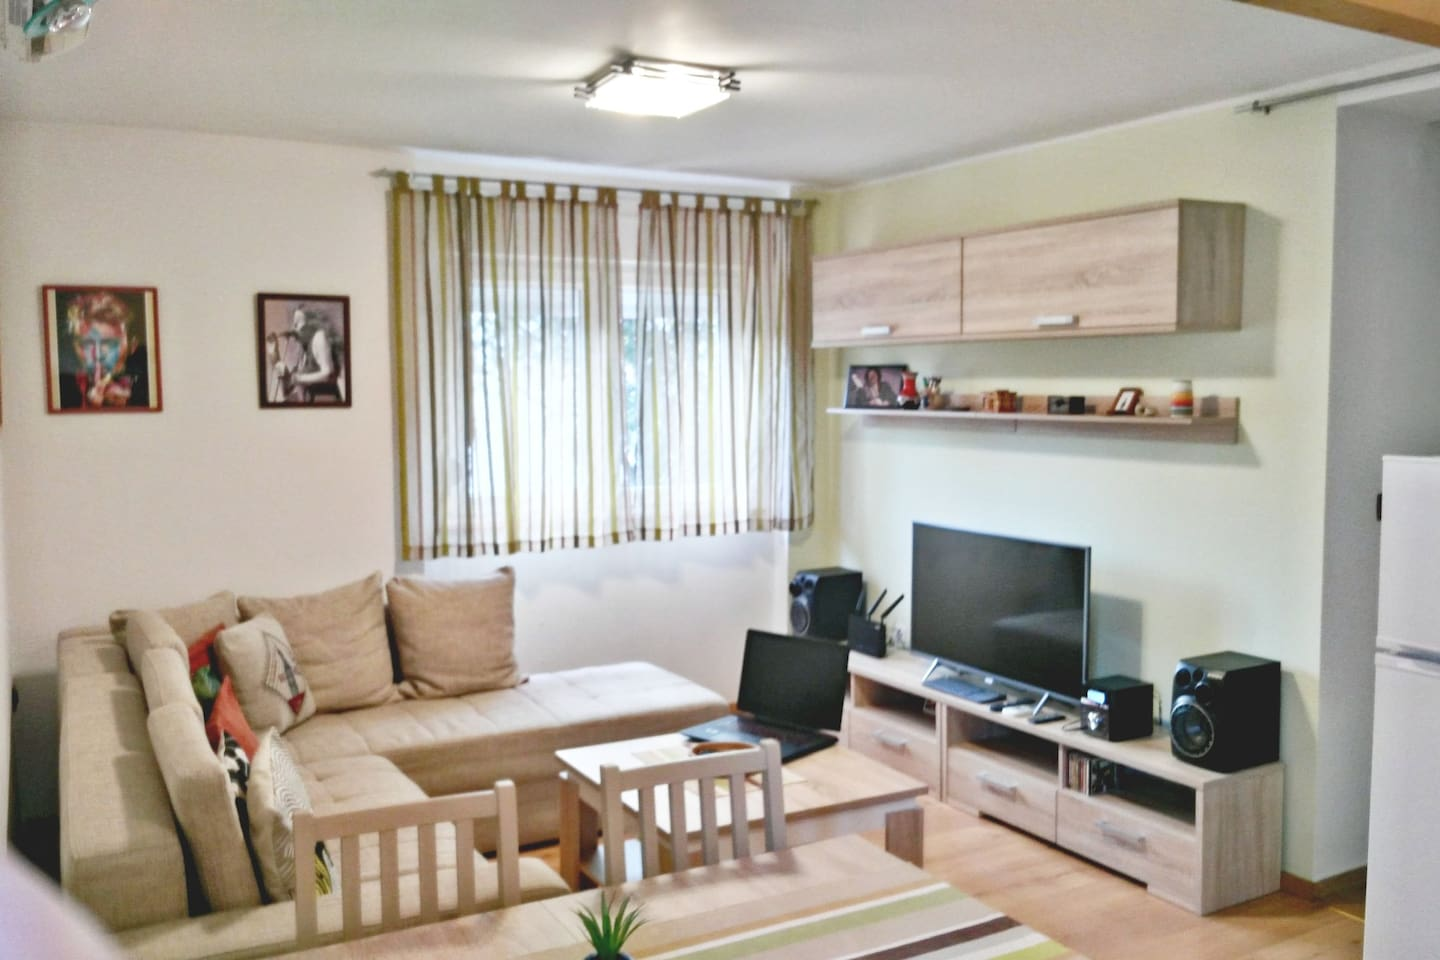 Living room + sitting area + TV and multimedia